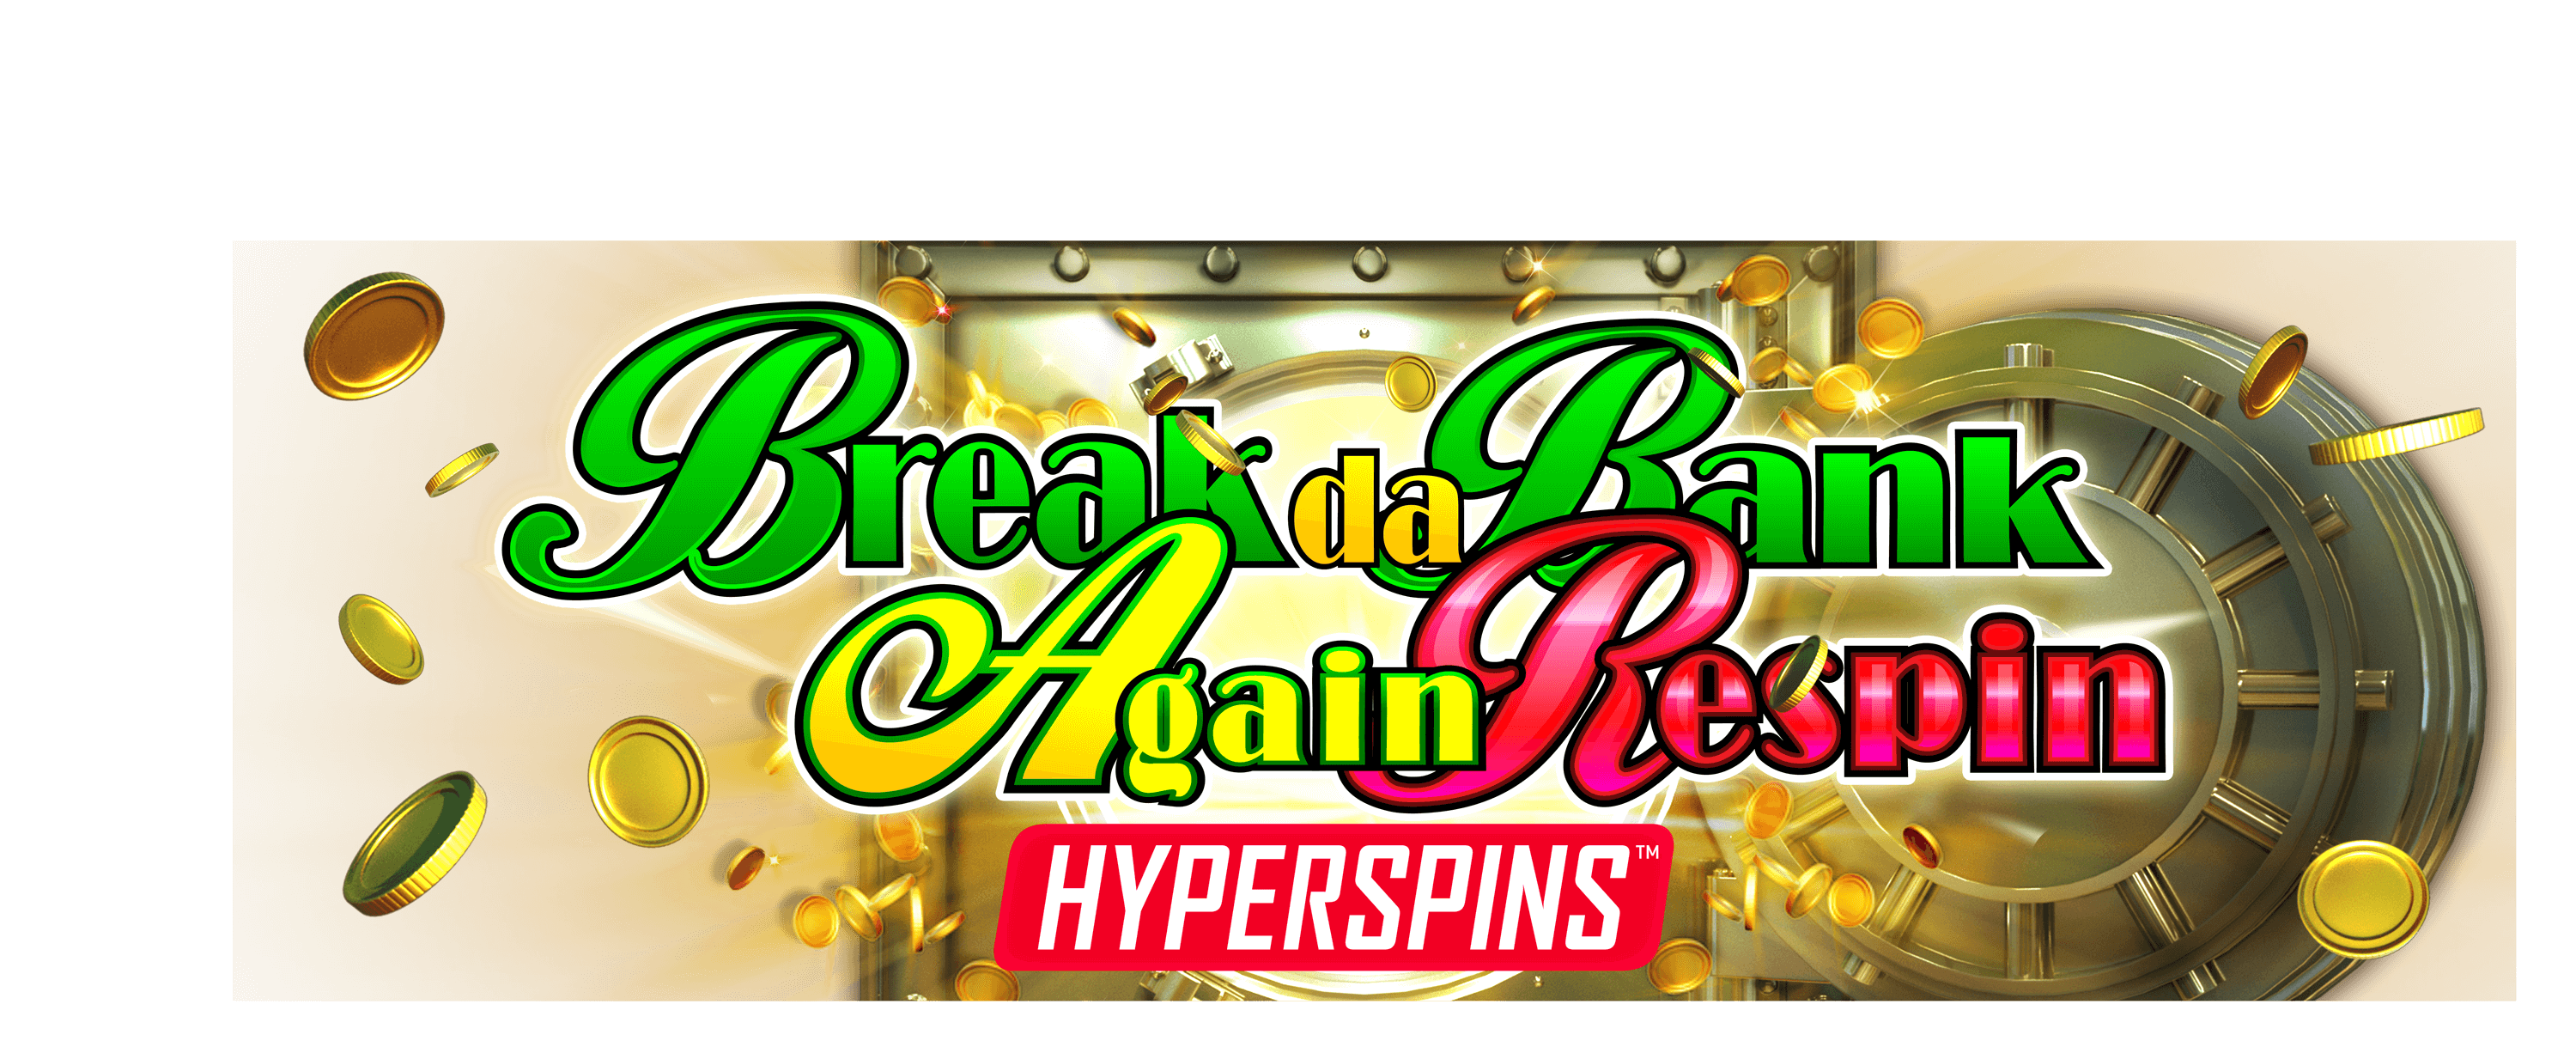 Break Da Bank Again Respin slot logo